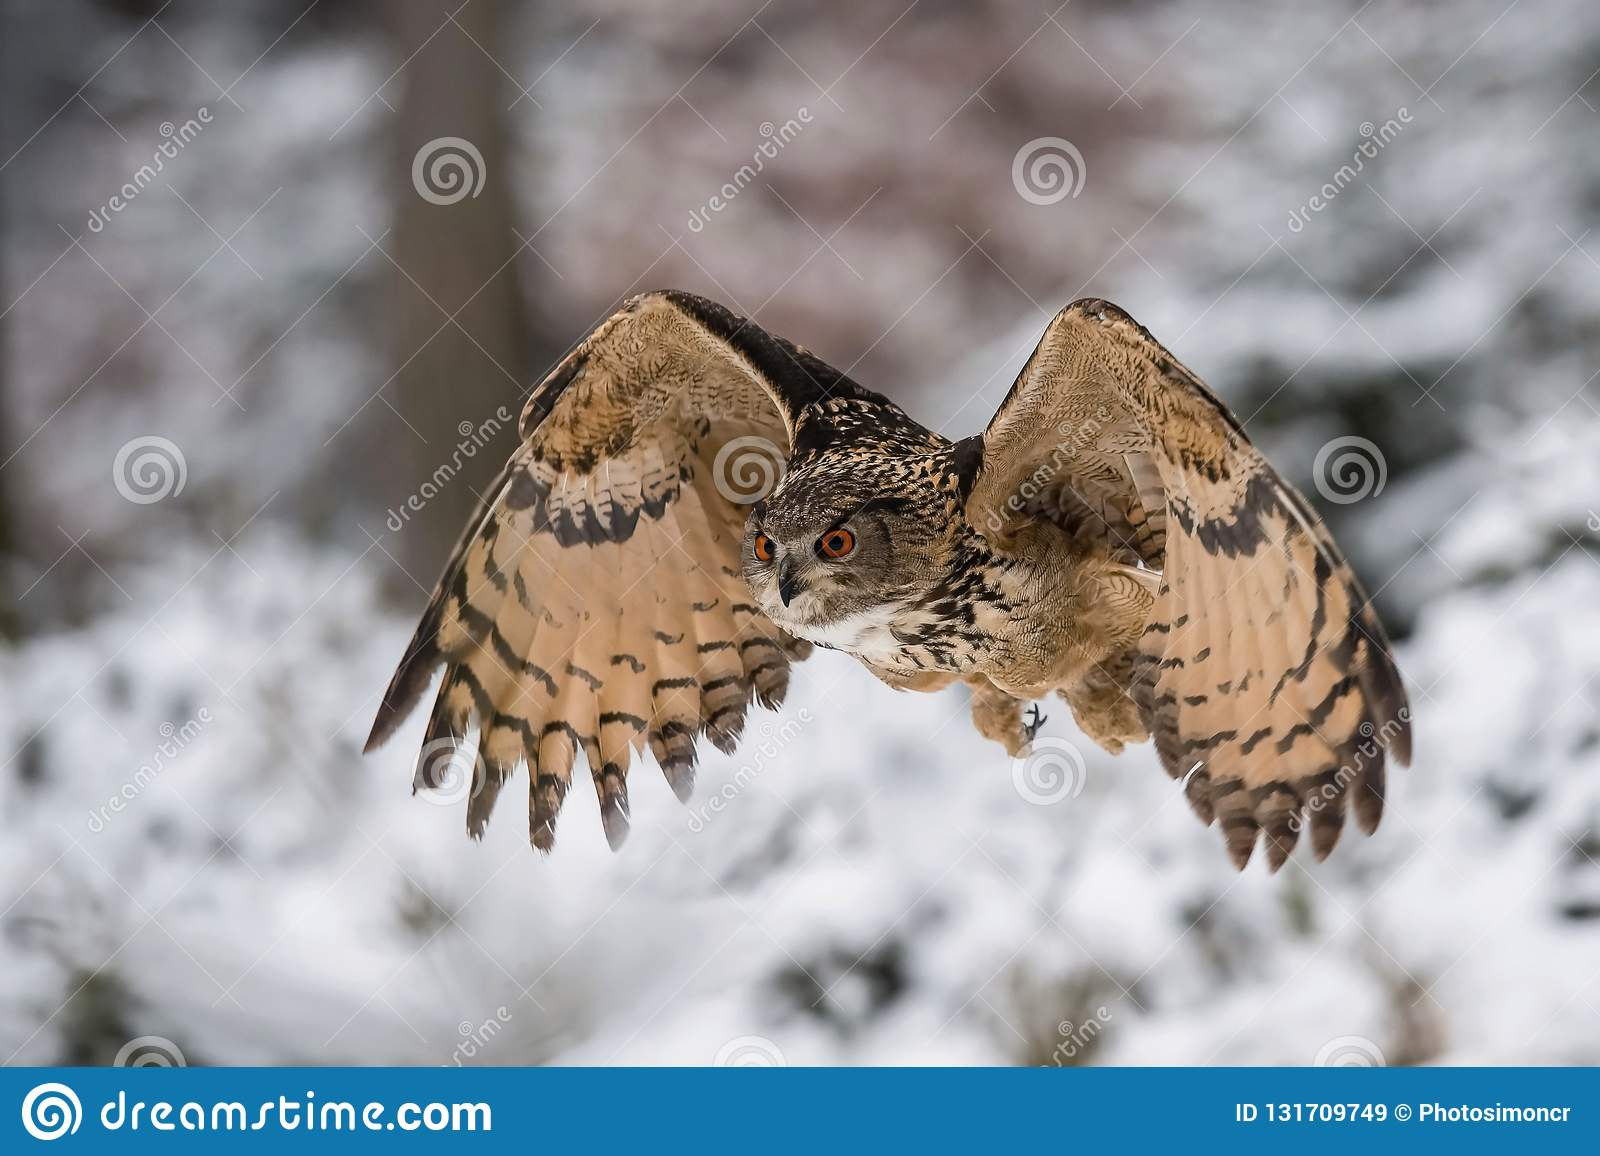 The Eurasian Eagle-Owl, Bubo bubo